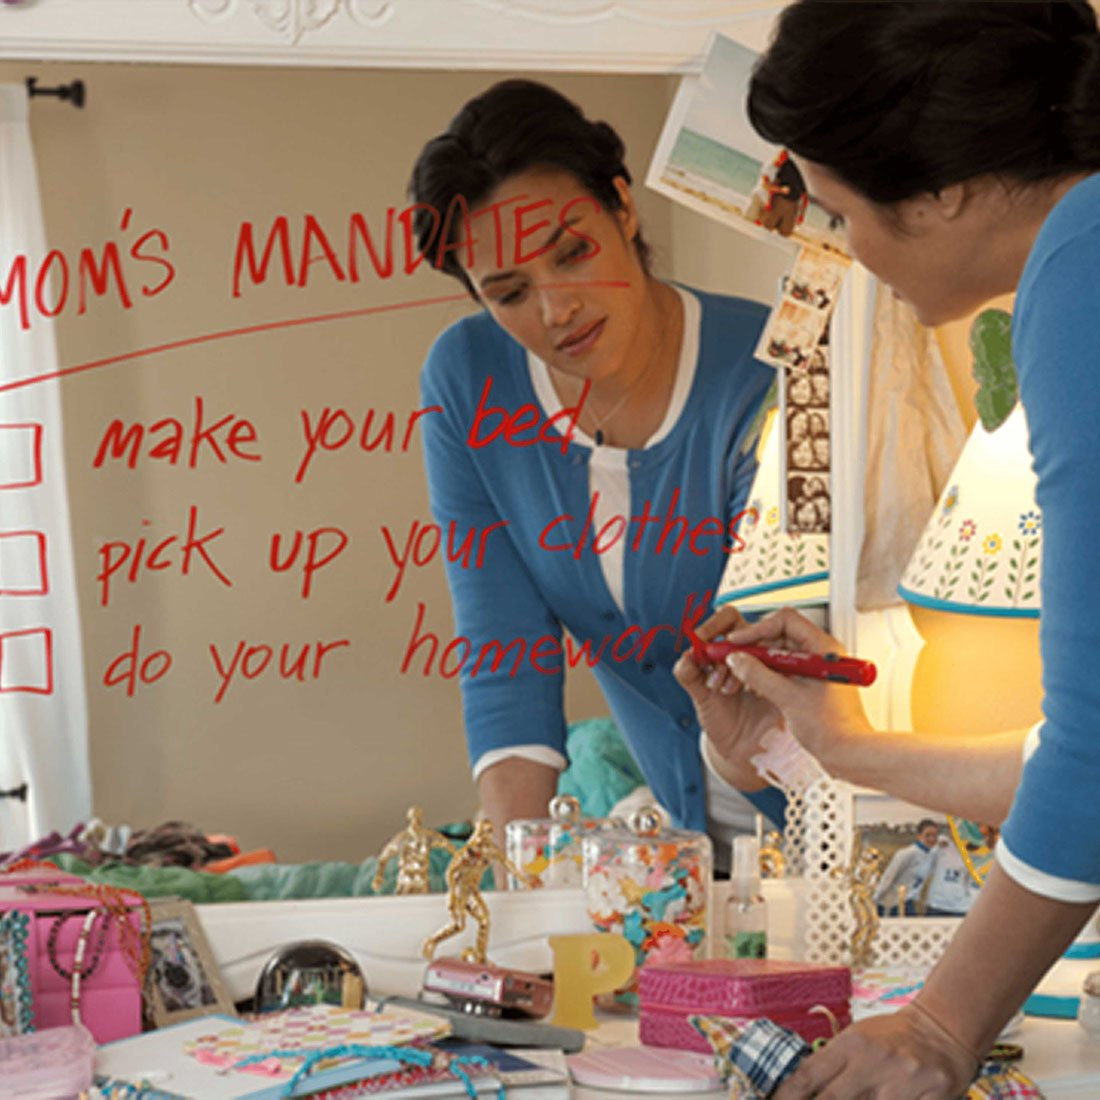 Create Motivational Mirror Notes With EXPO Marker